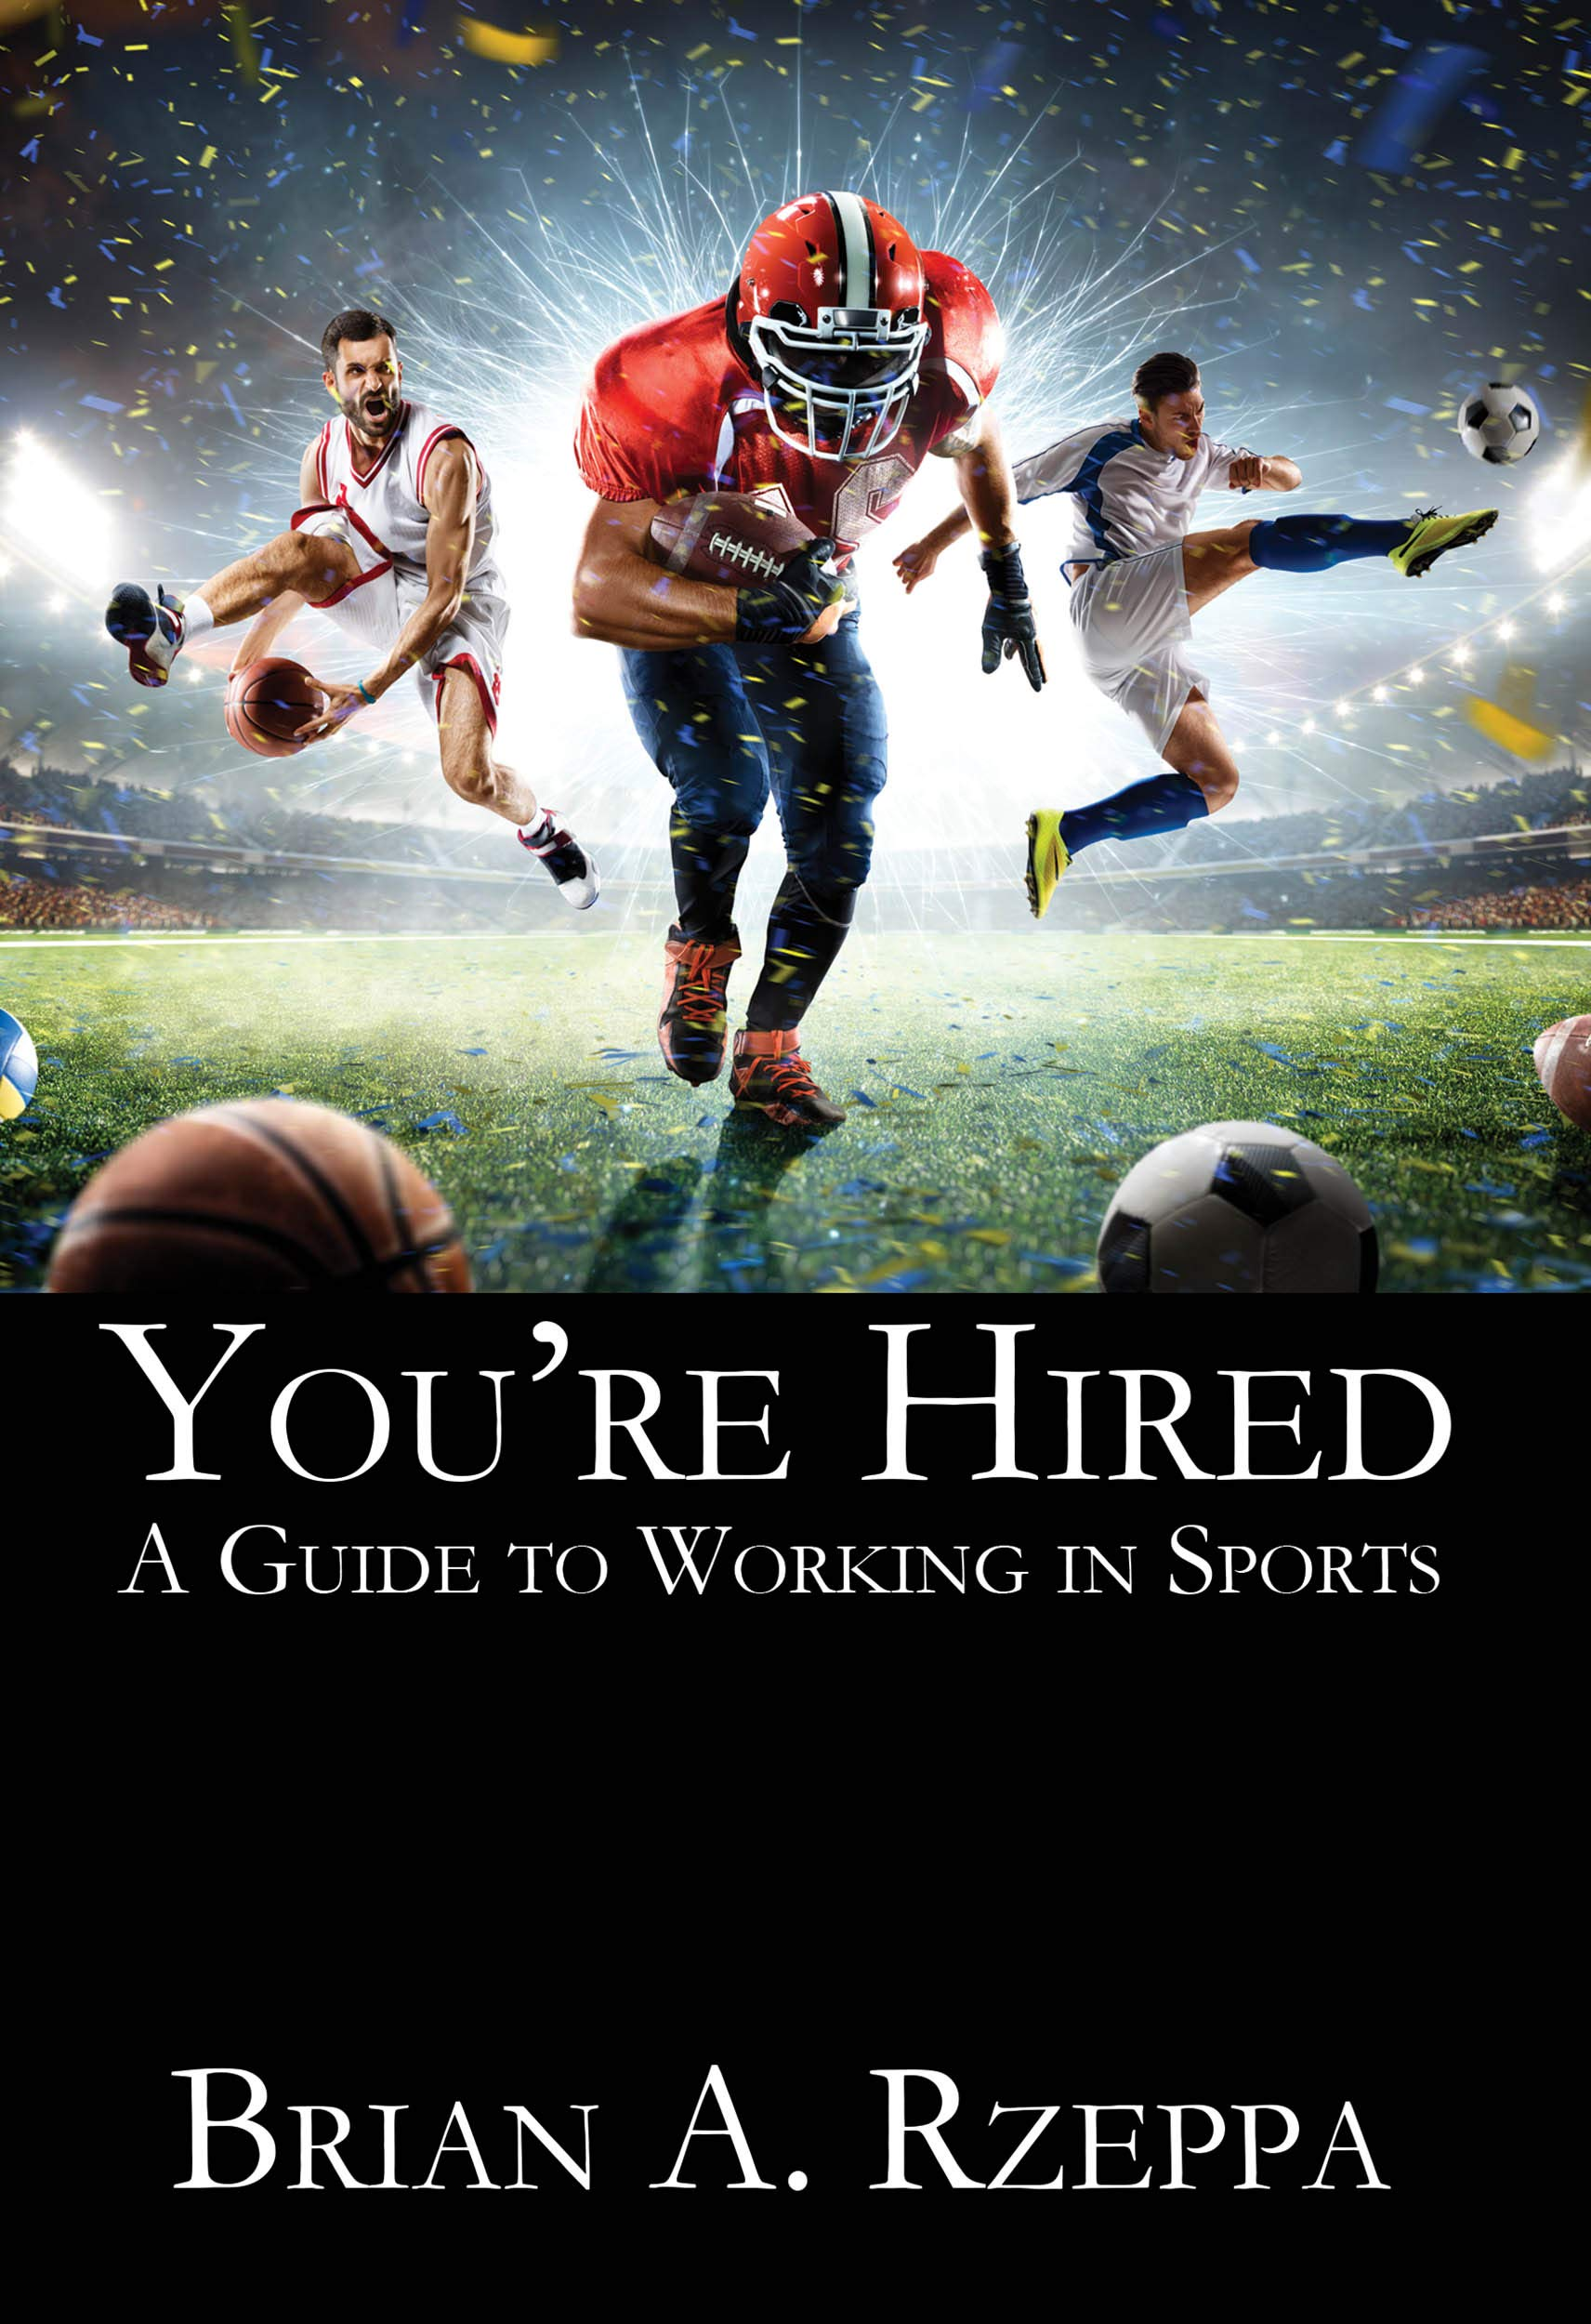 You're Hired: A Guide to Working in Sports